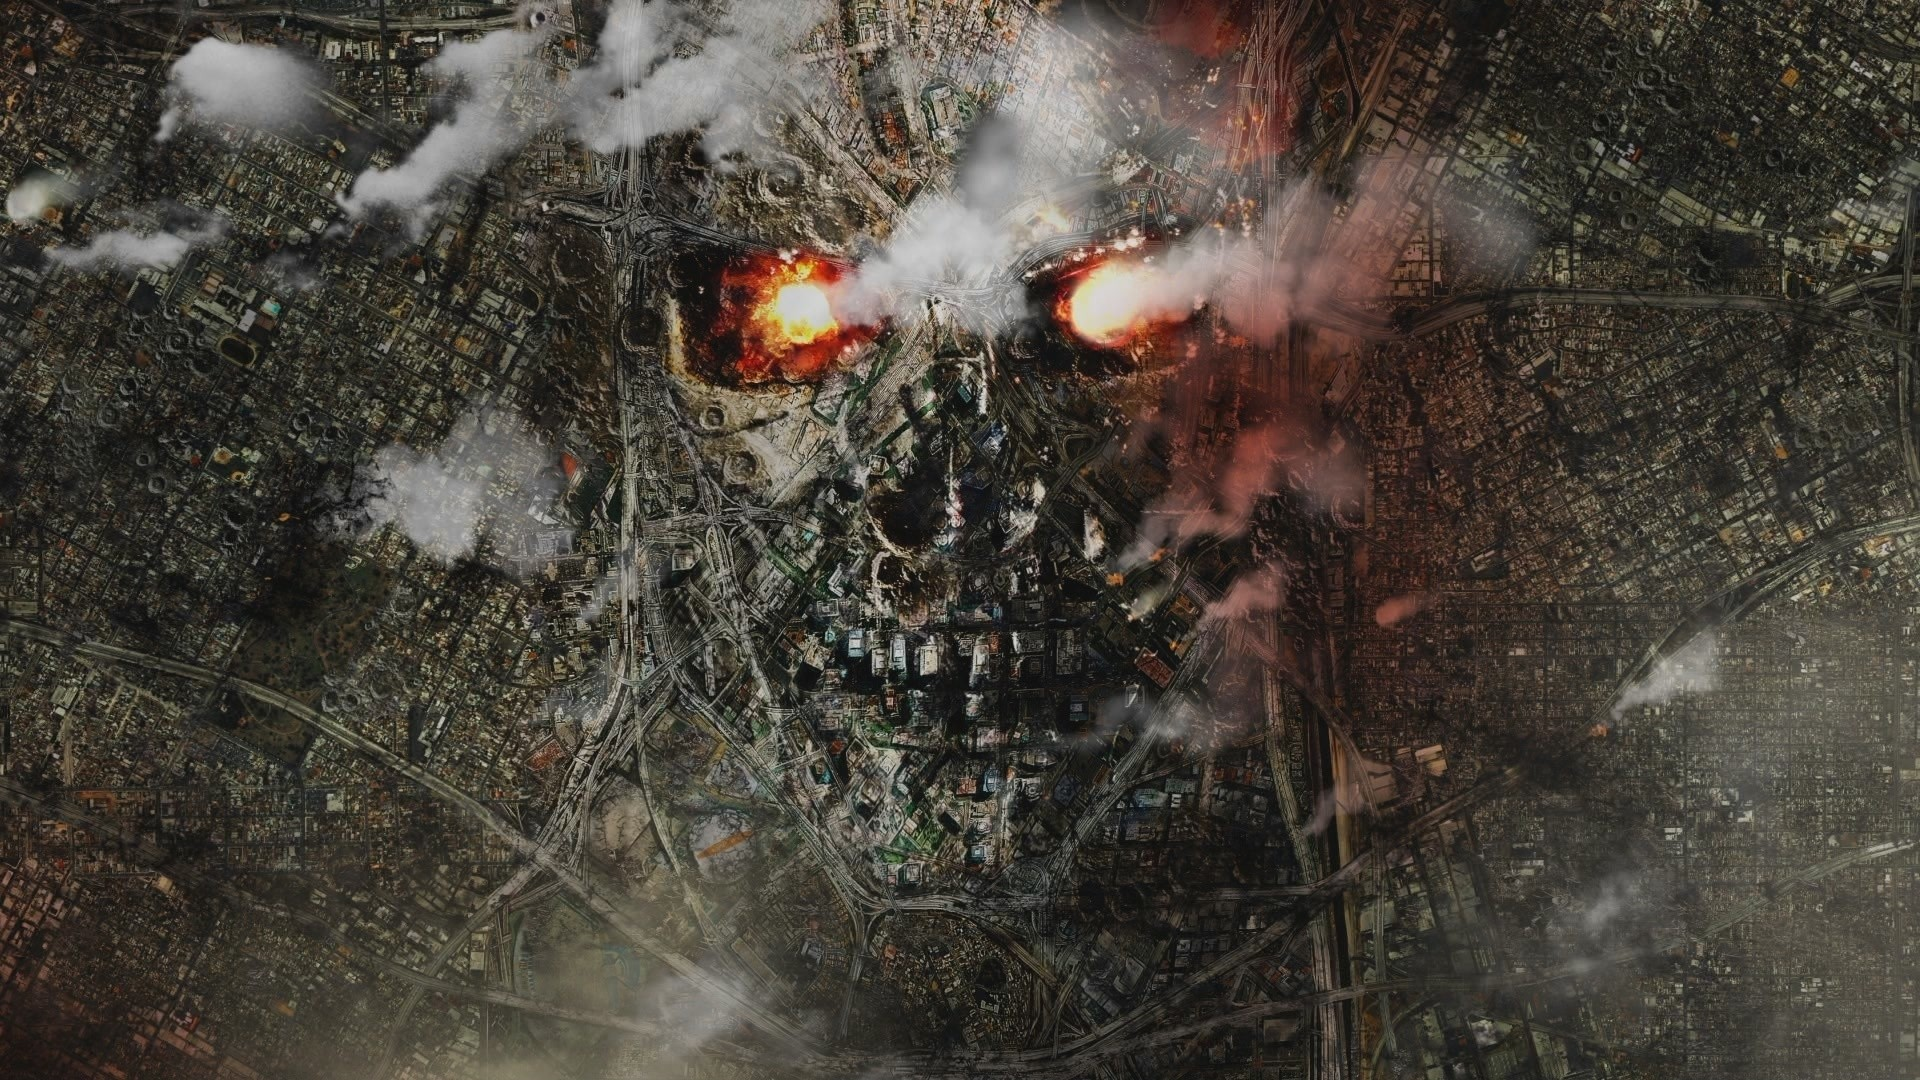 The Terminator Hd Wallpapers Images All Hd Wallpapers